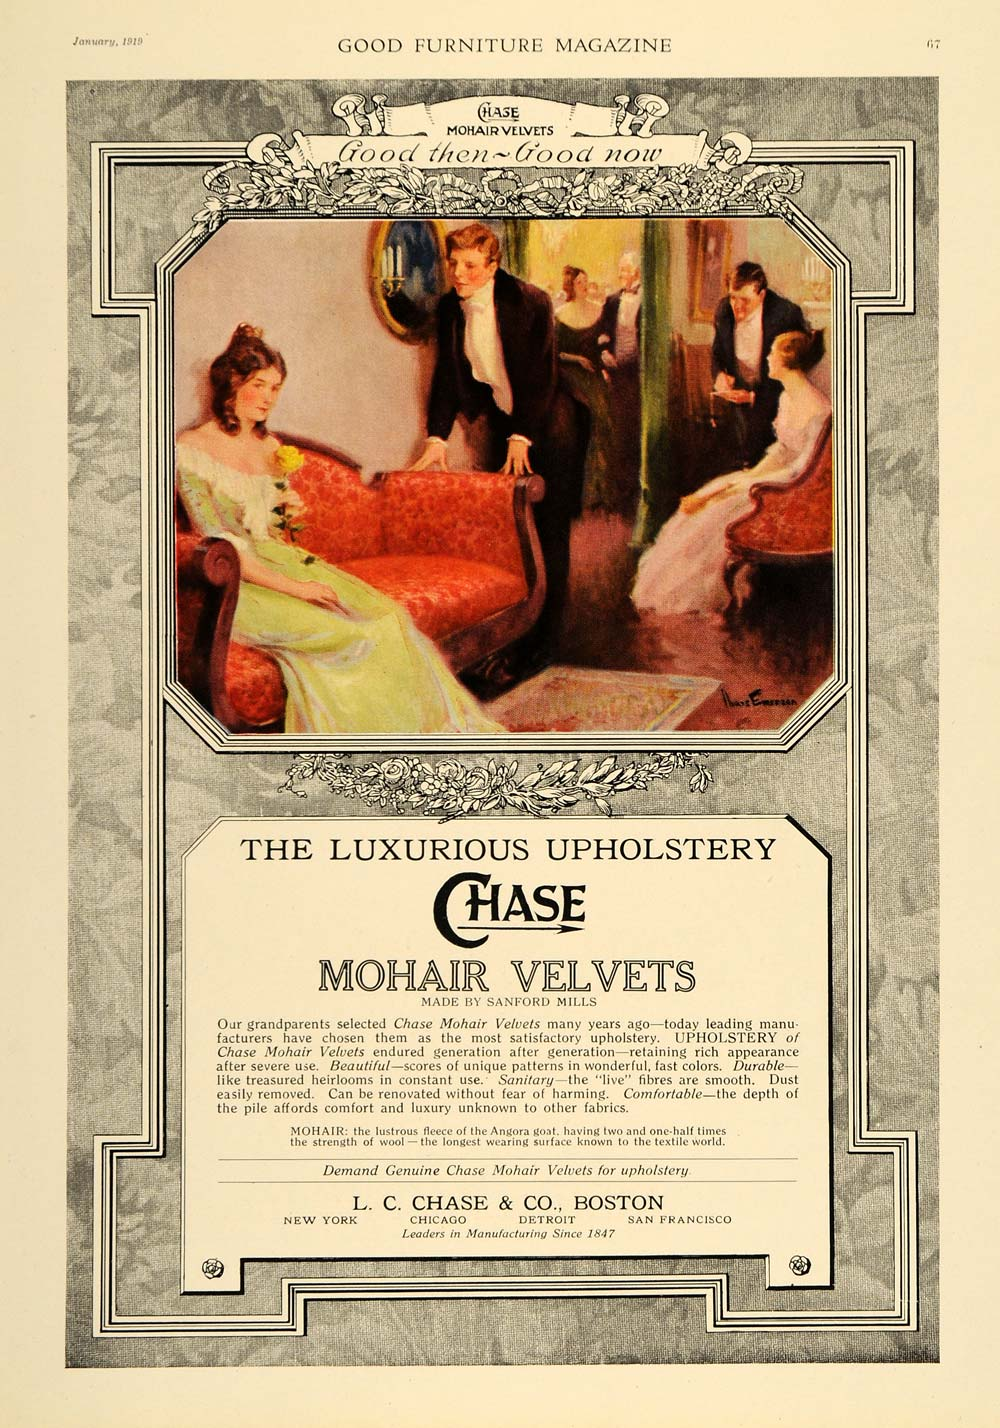 1919 Ad Emerson Illustration Chase Mohair Velvets Couch - ORIGINAL GF3